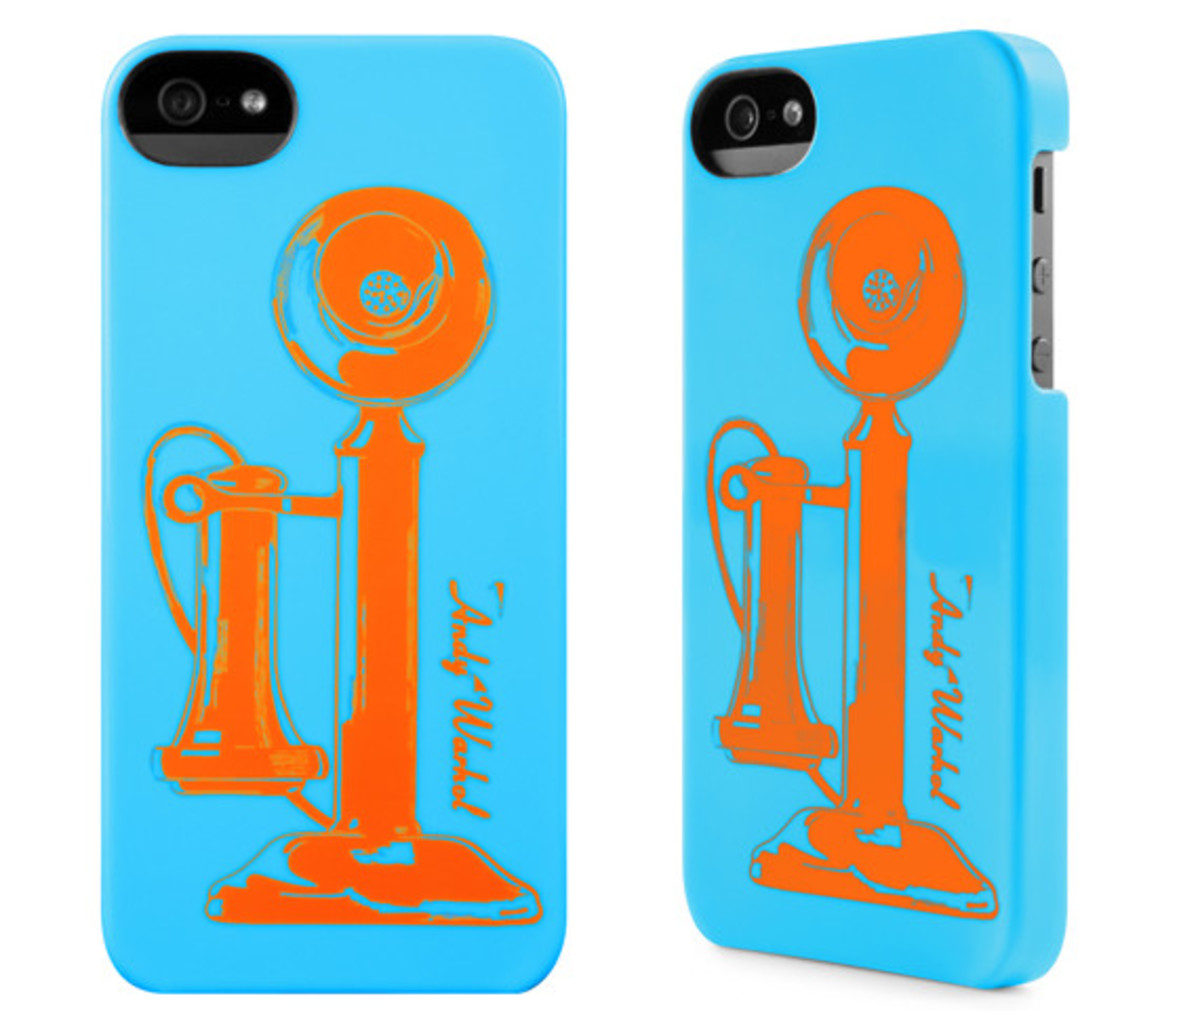 incase-for-andy-warhol-collection-iphone-5-cases-09